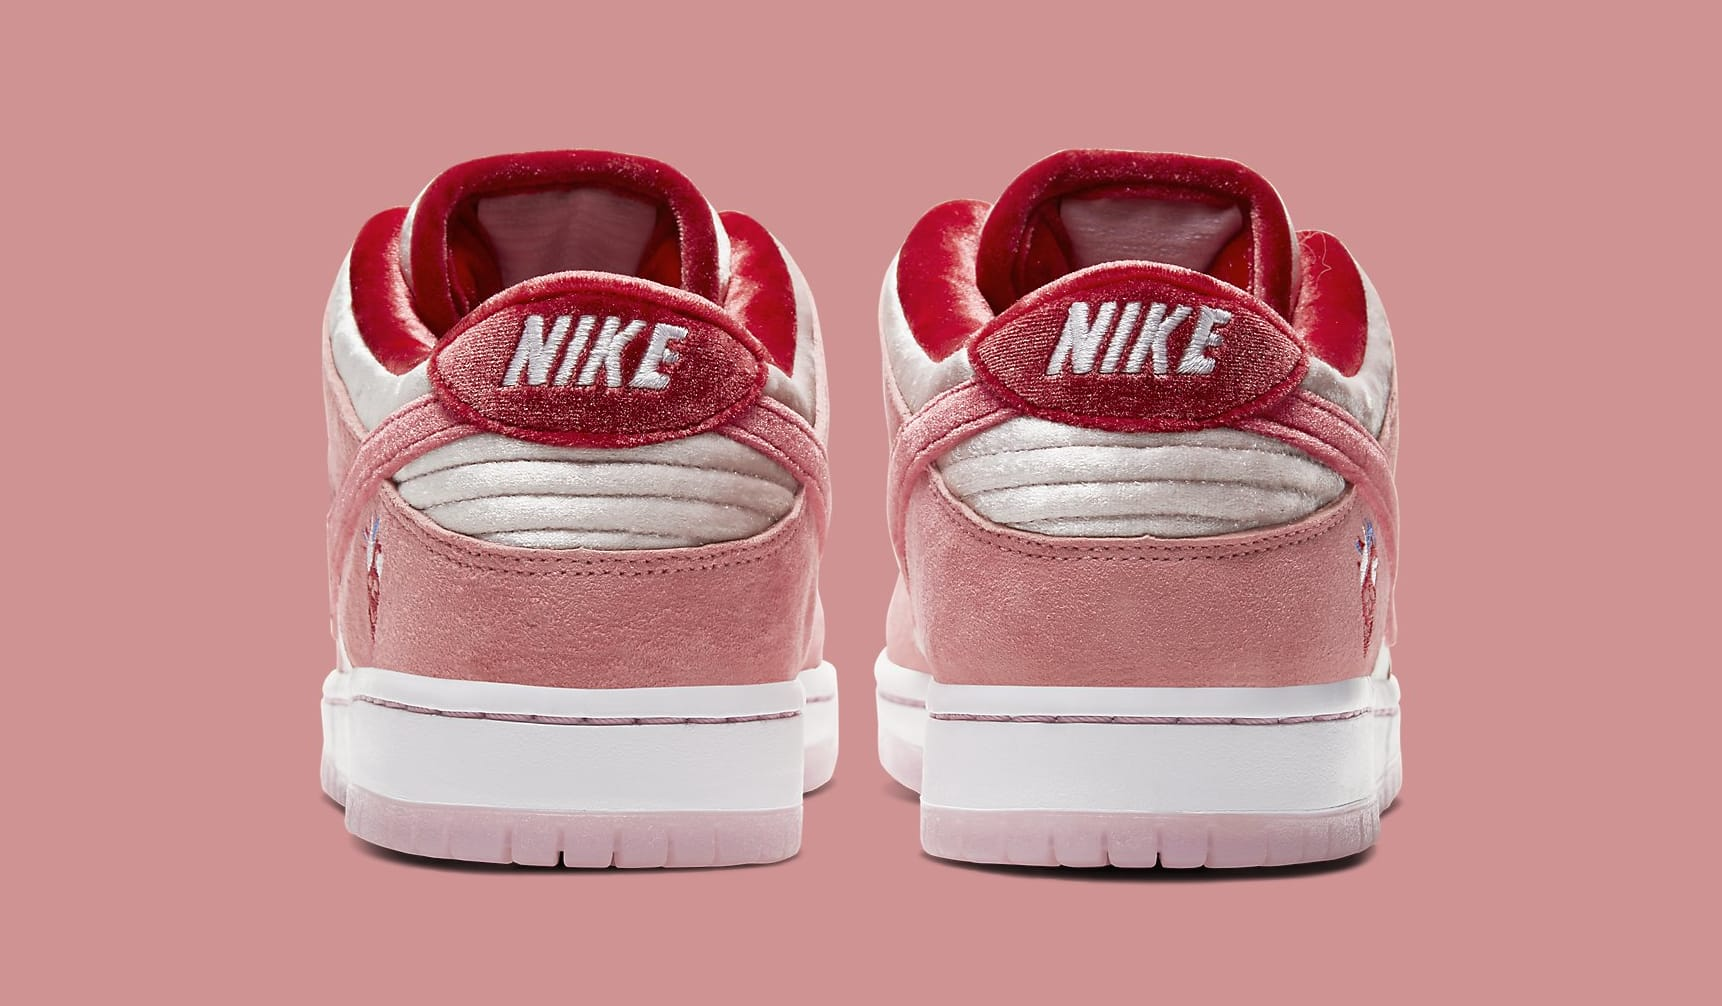 strangelove-nike-sb-dunk-low-ct2552-800-heel